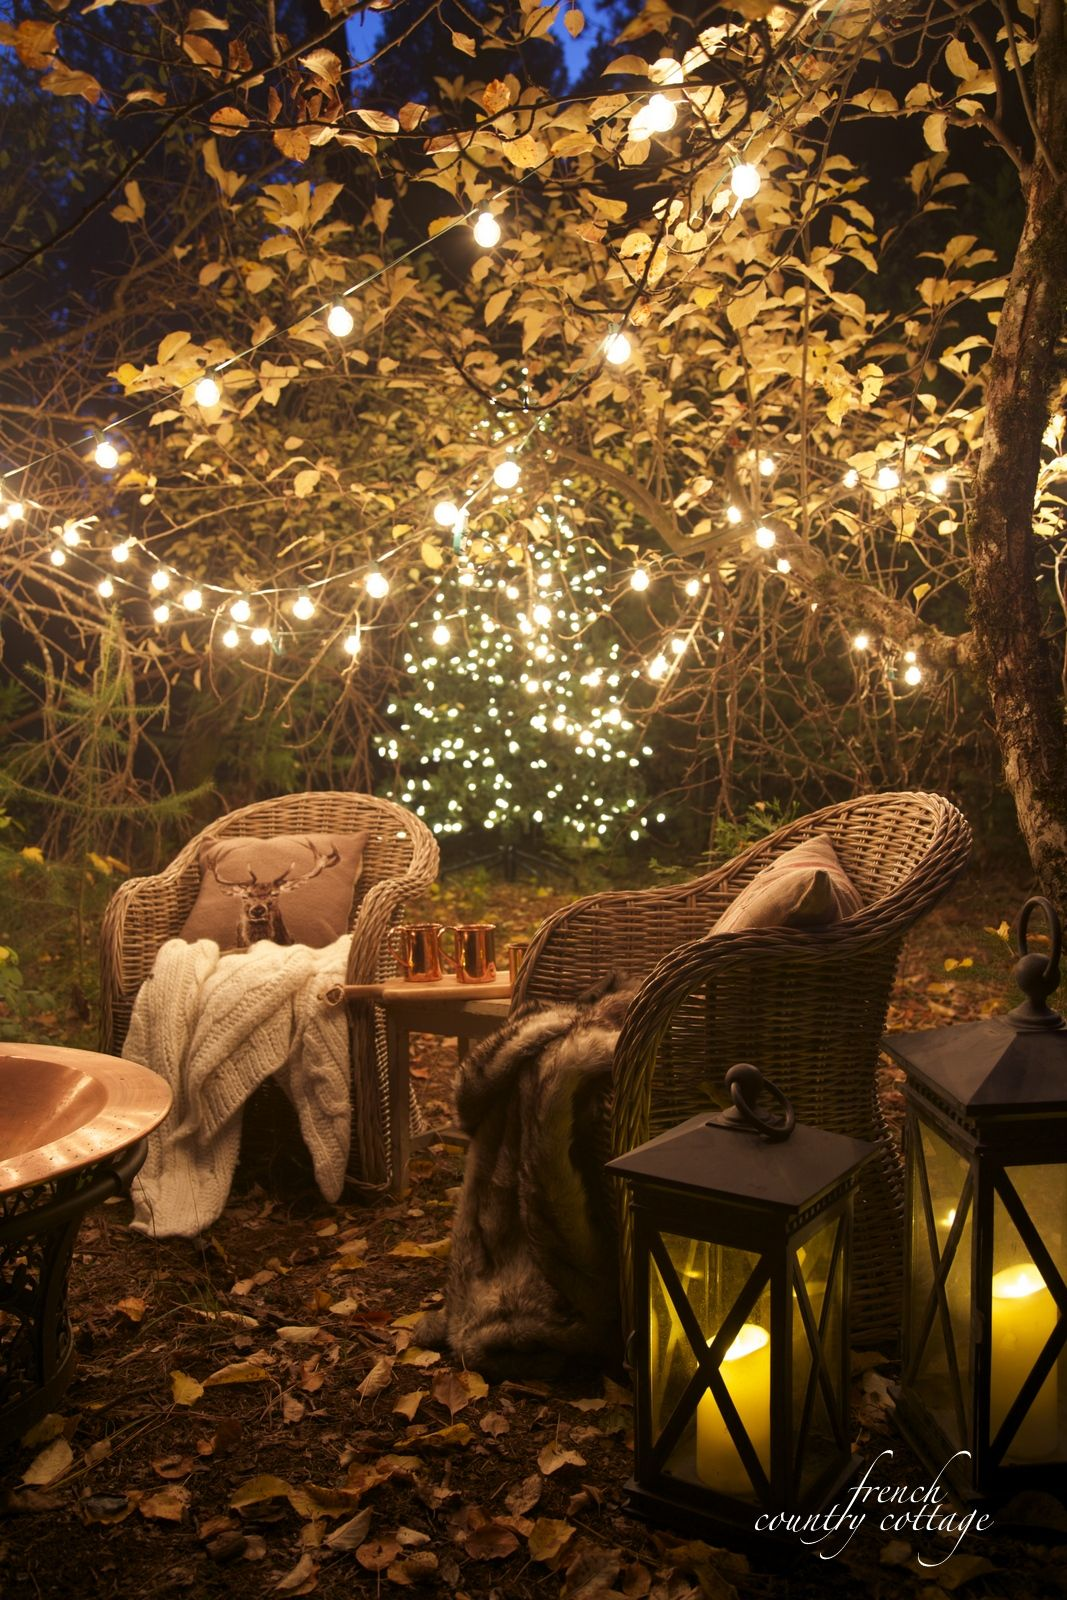 Evening View Christmas Lights Backyard Lighting Garden French Country Cottage